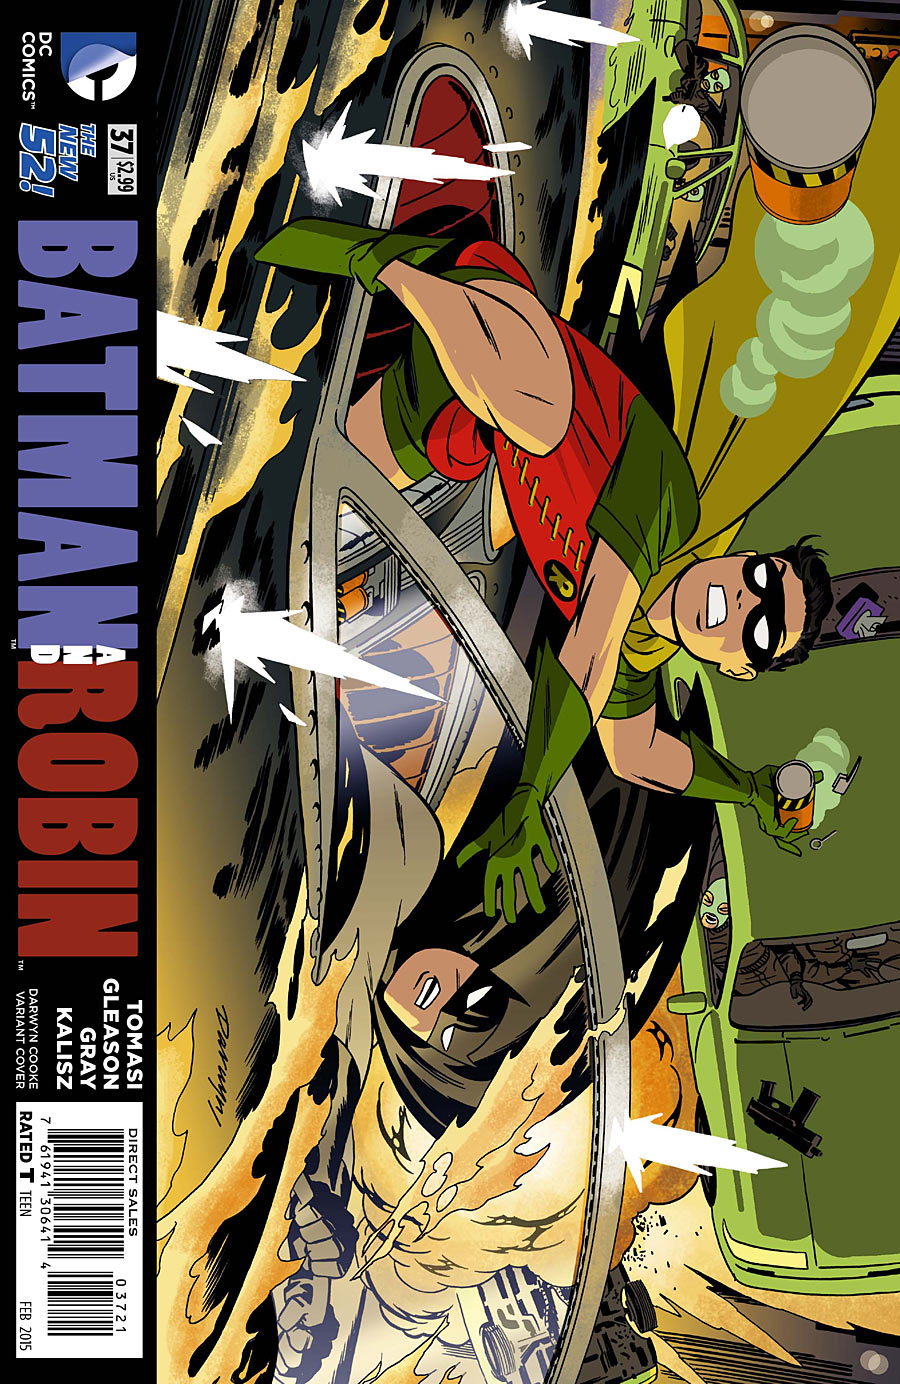 Variant cover by Darwyn Cooke